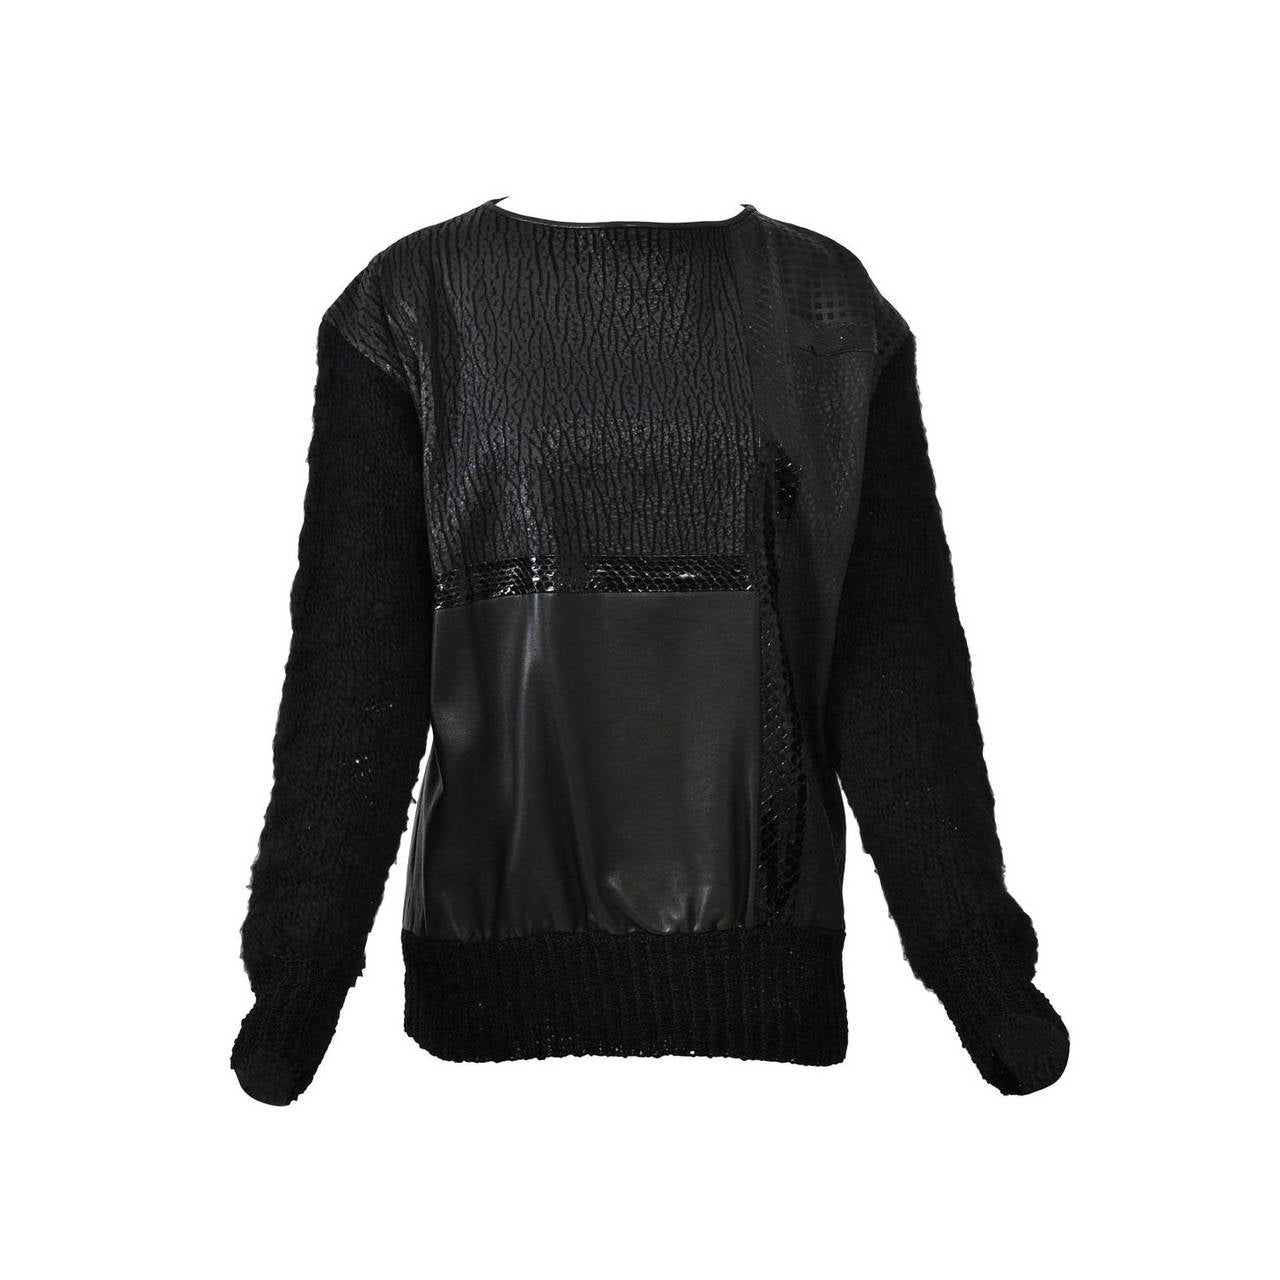 1980s Leather and Skin Patchwork Top 1